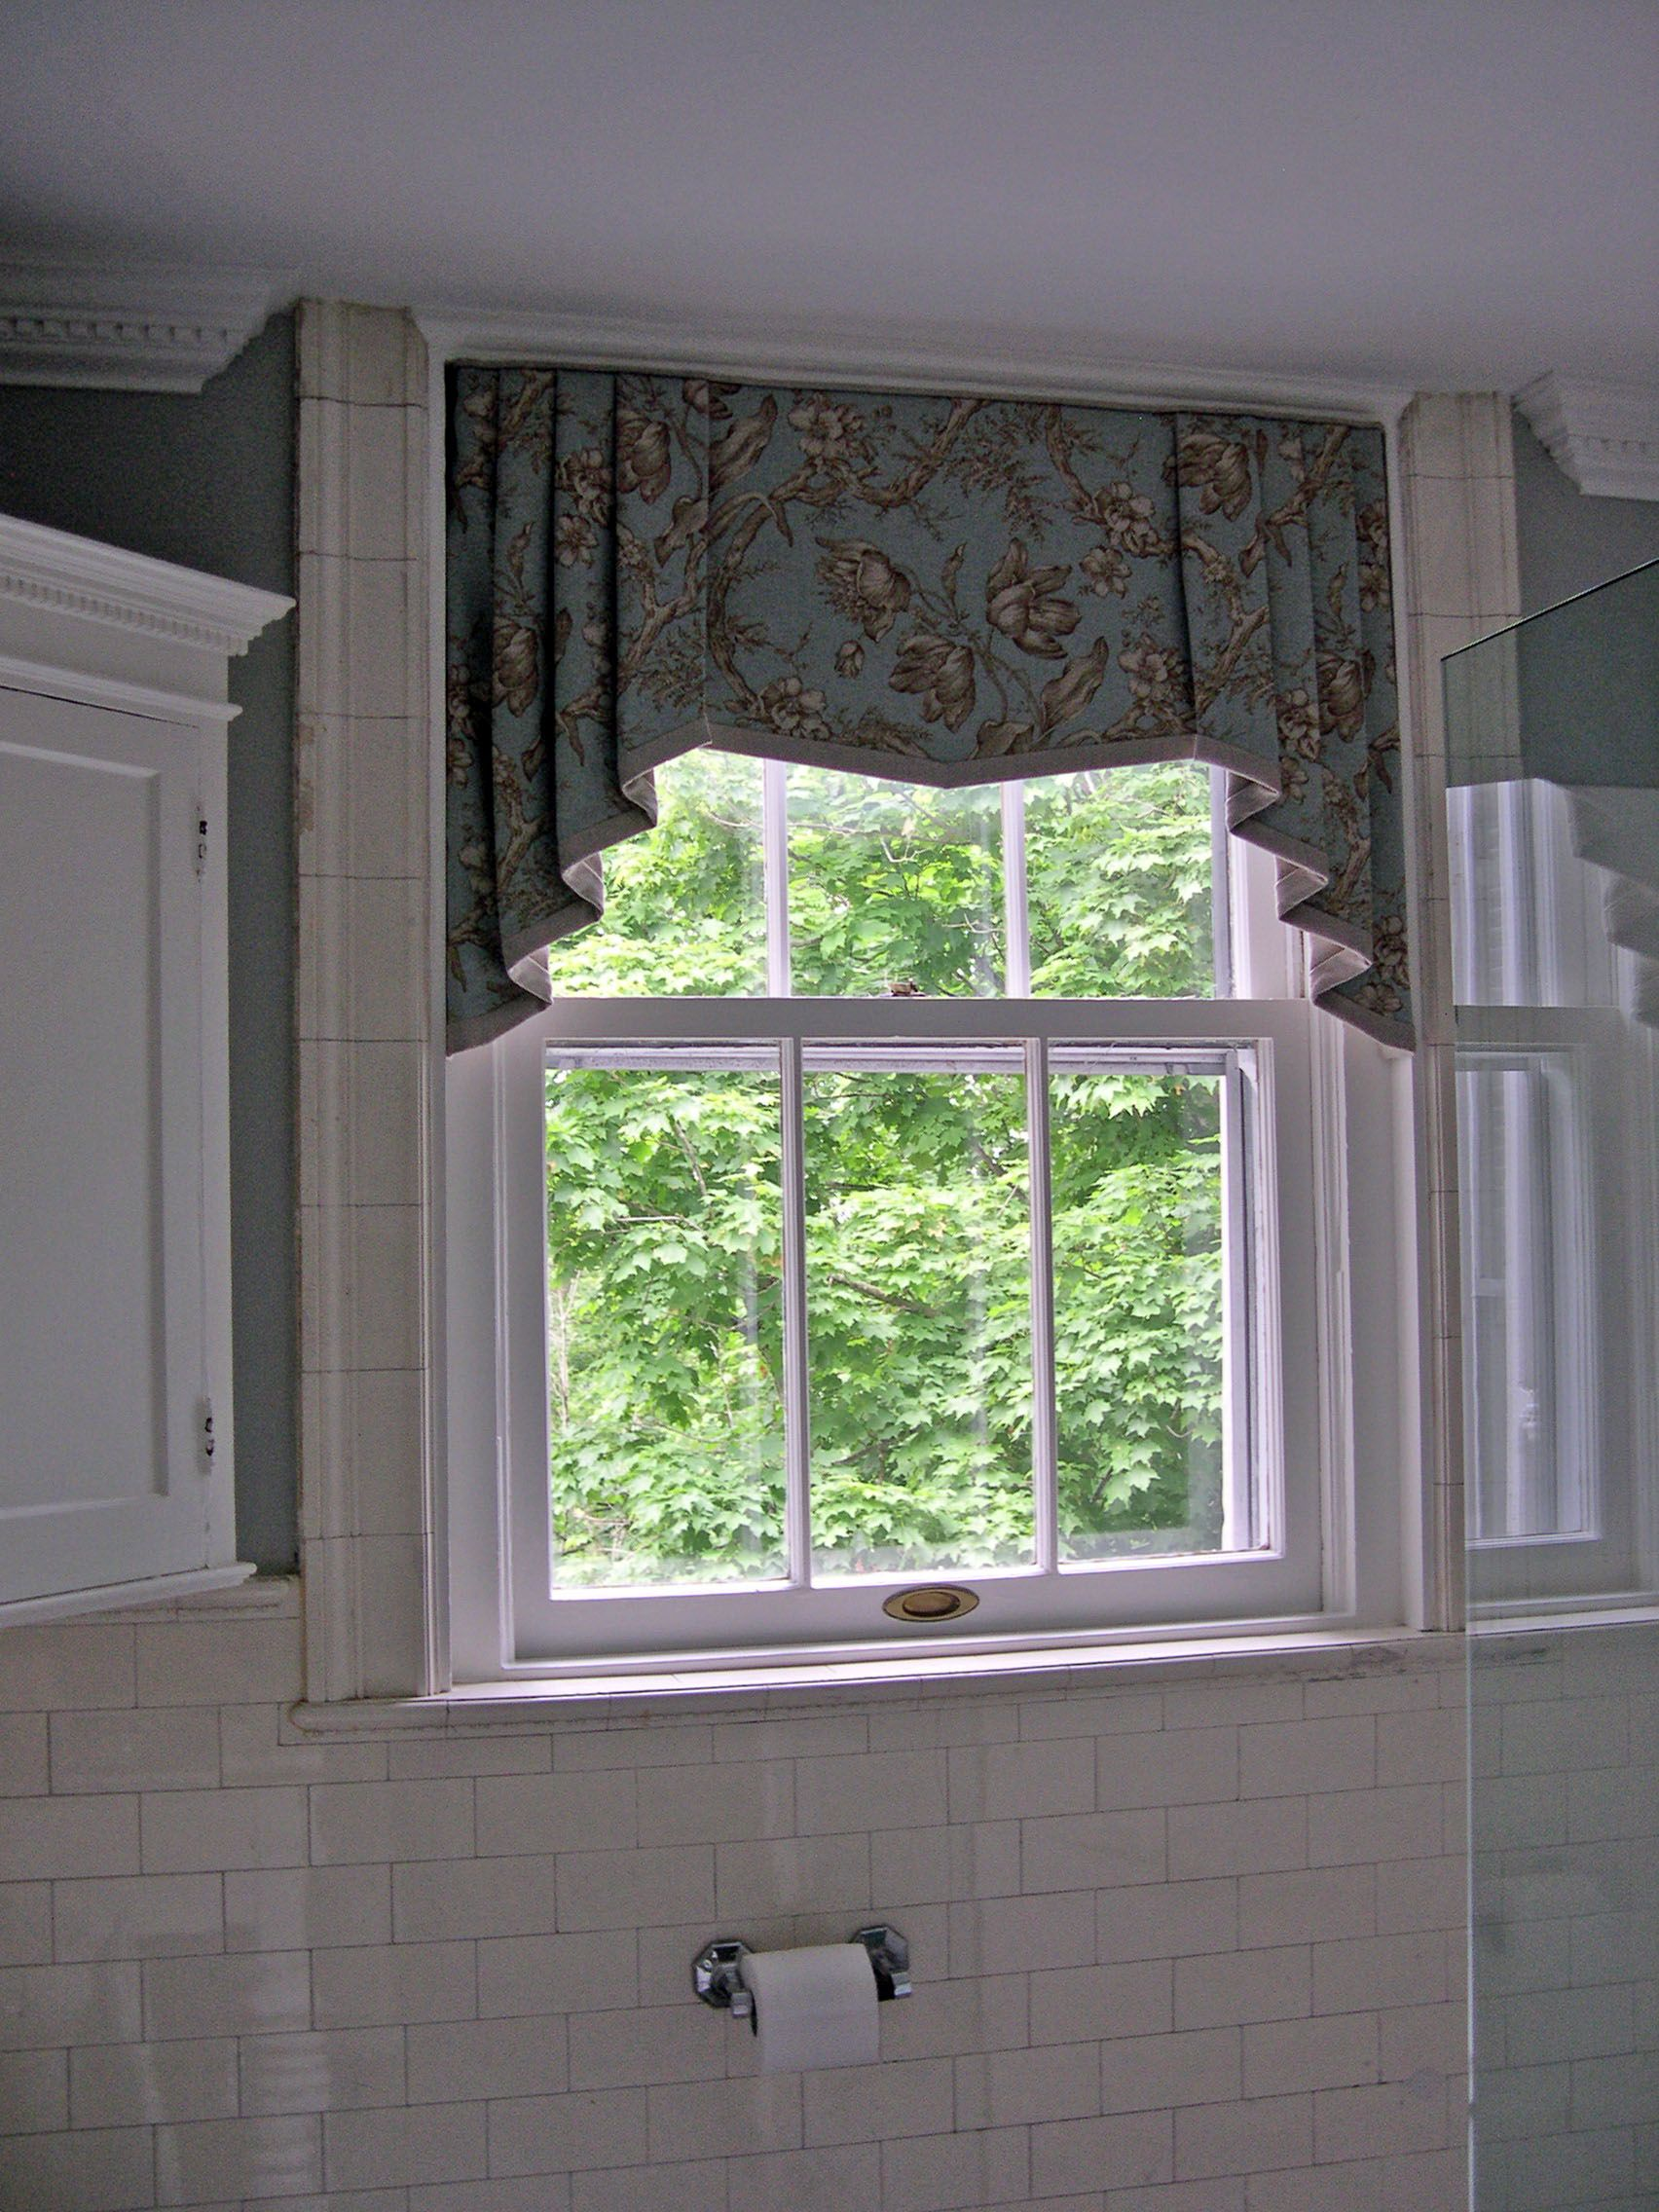 sp scale and t valance valances proportion cornices treatment window calico